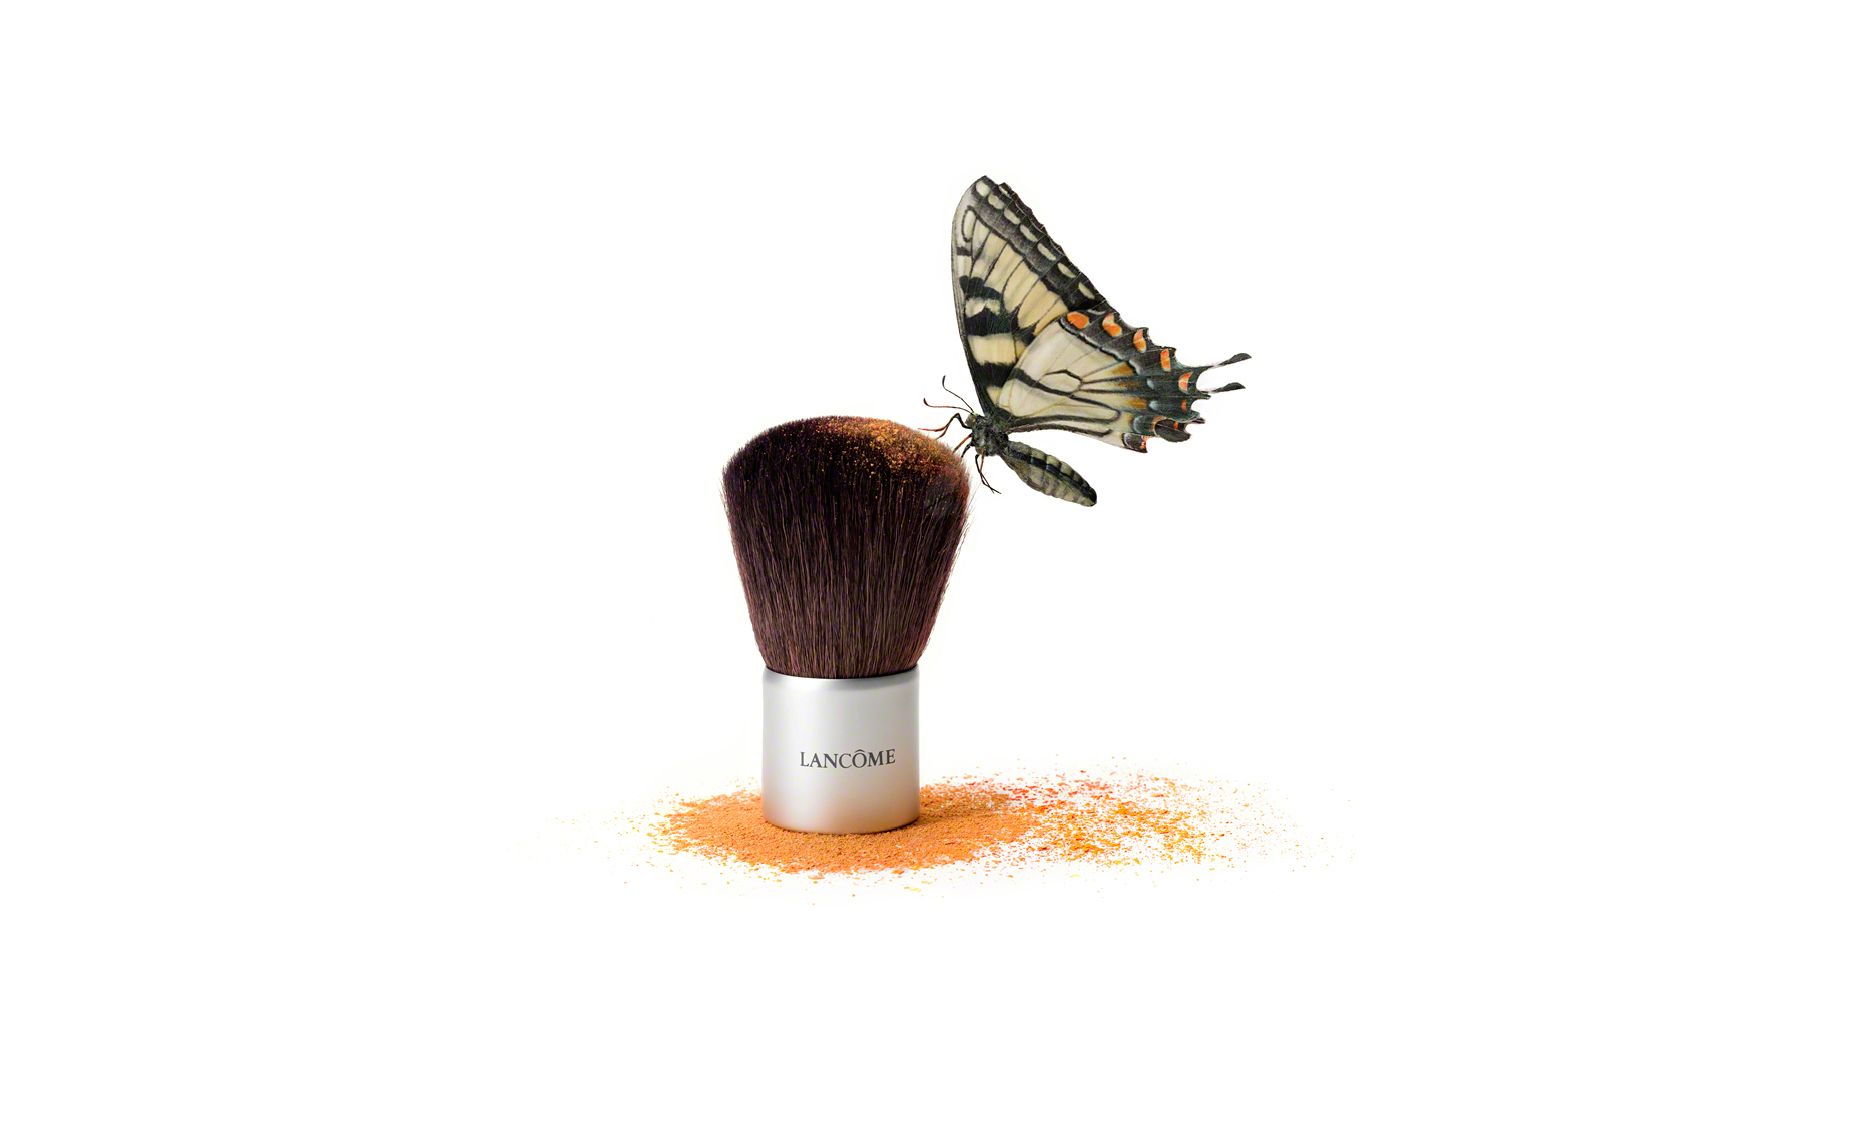 Lancome Butterfly